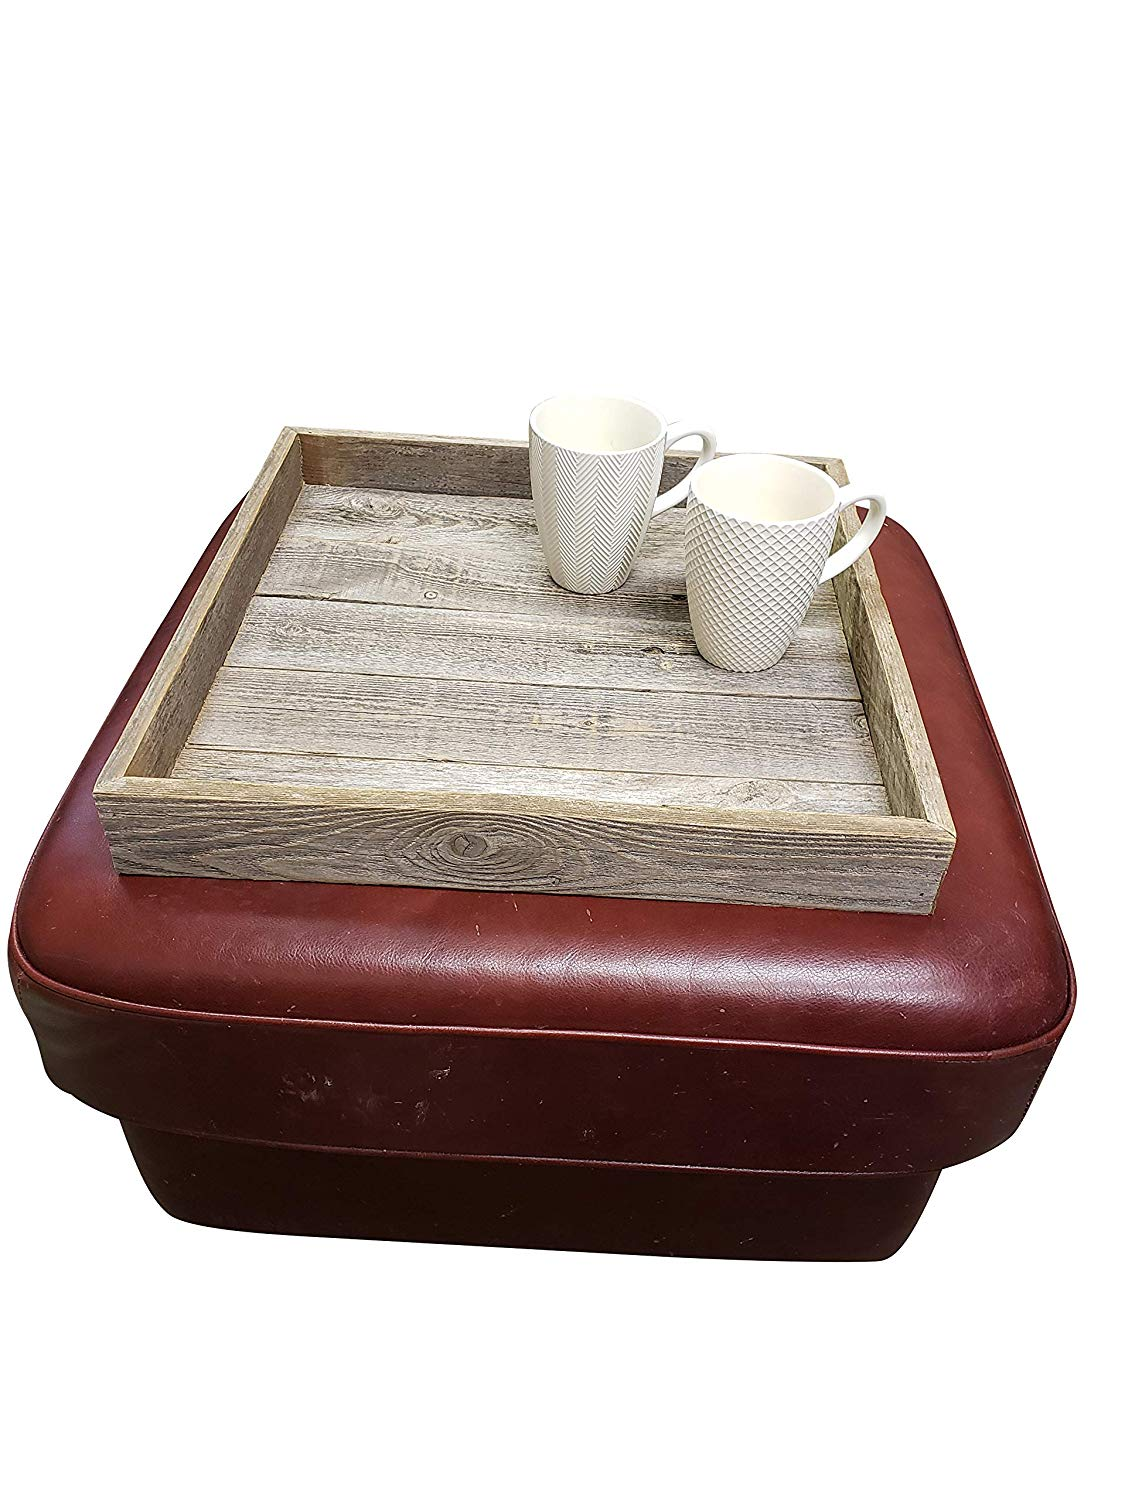 ottoman tray made with rustic reclaimed wood large square design for coffee table made in the usa grey